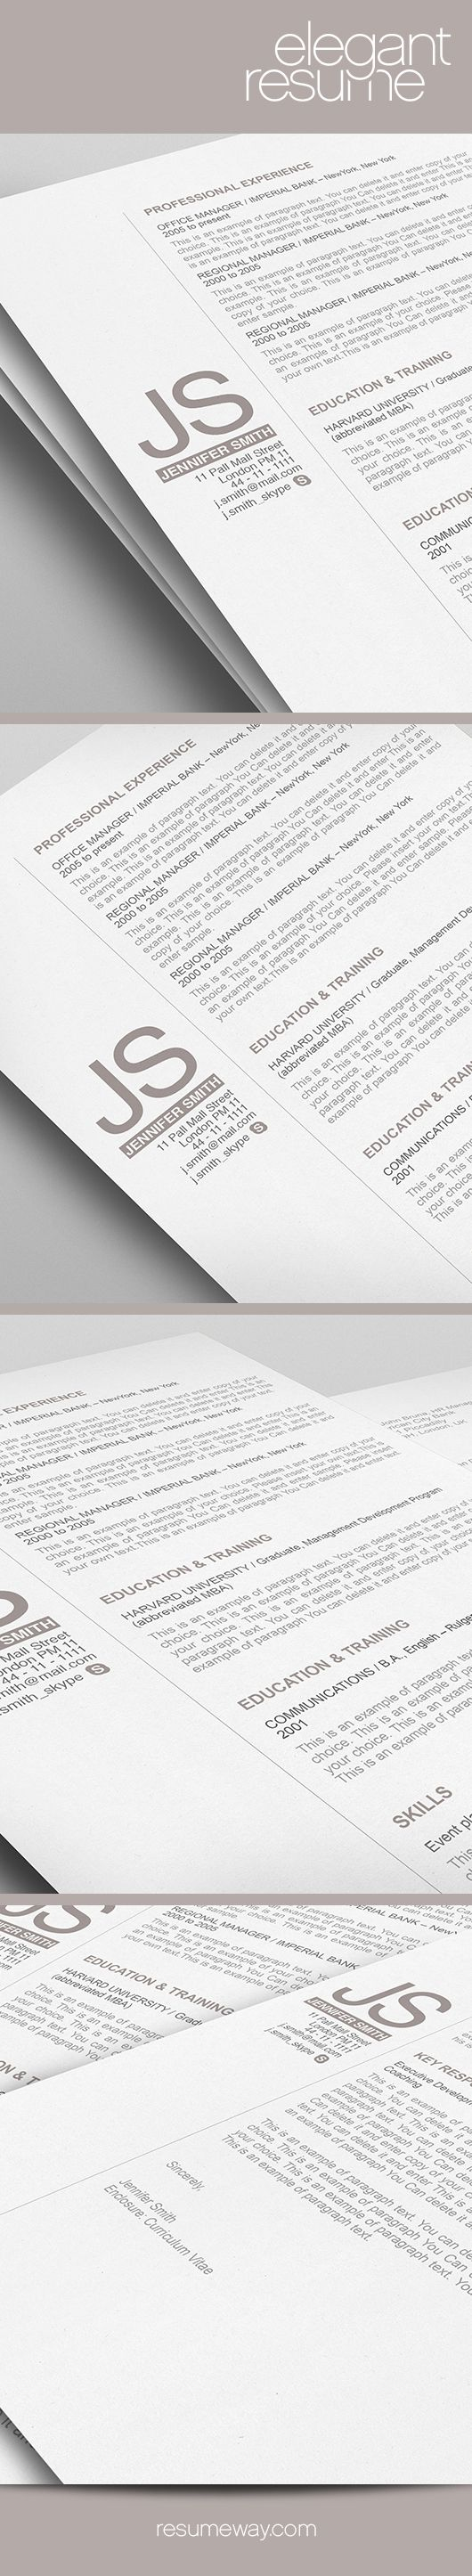 135 Best Resume Templates Images On Pinterest | Resume Templates